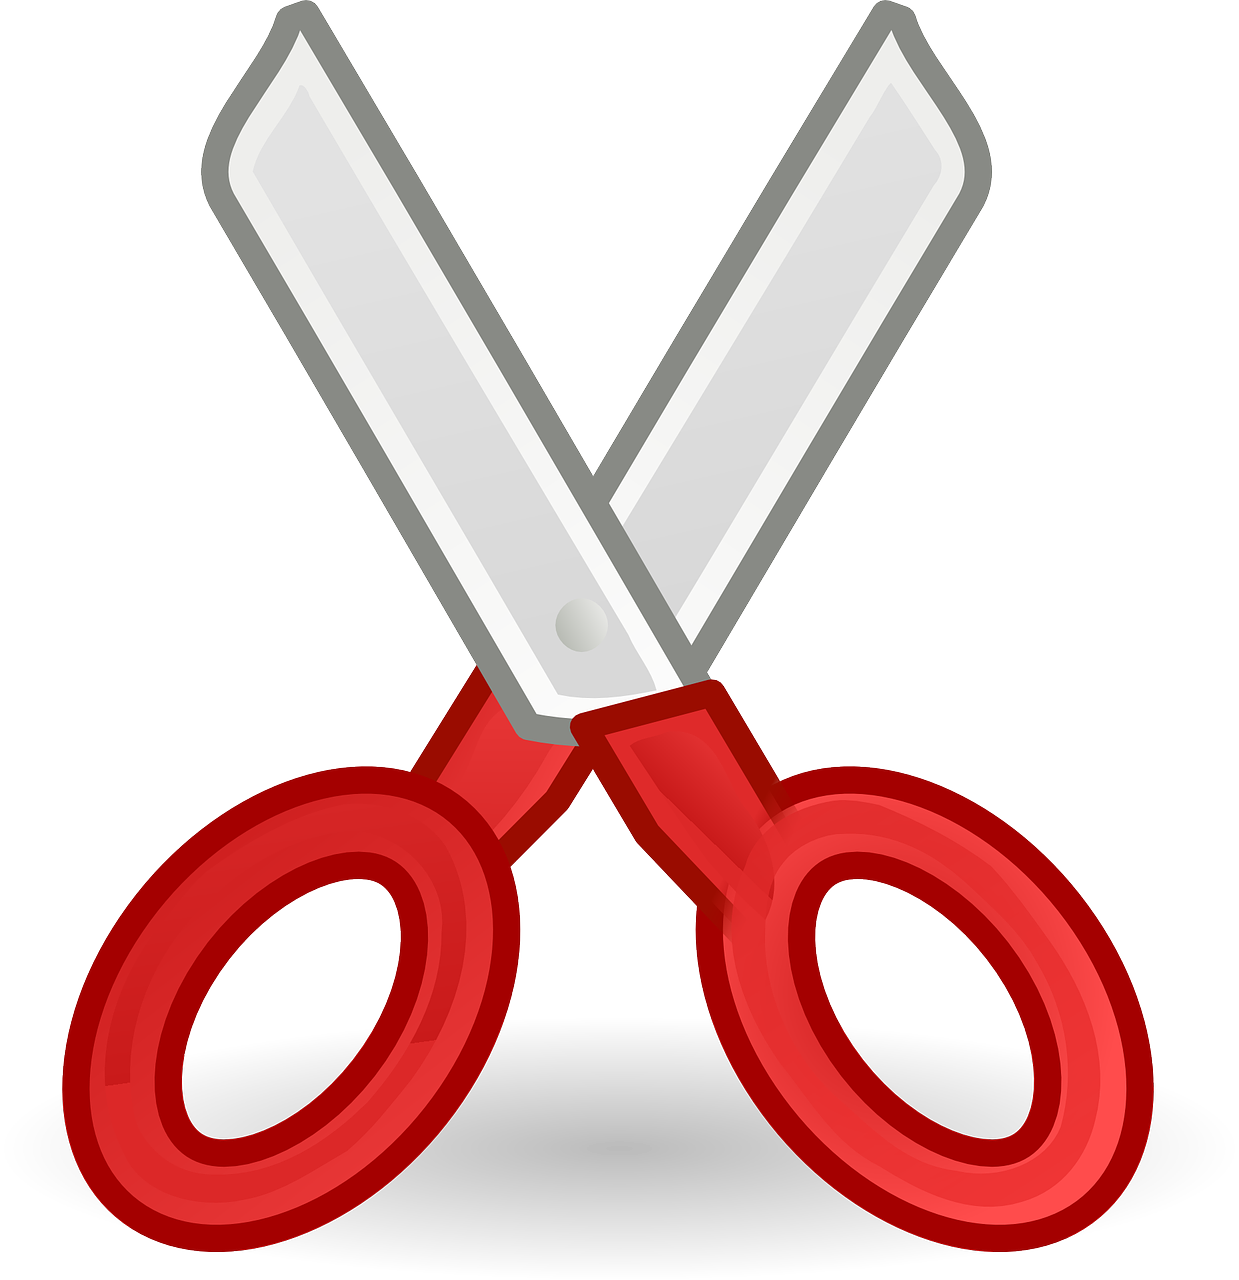 Free Scissors Clip Art